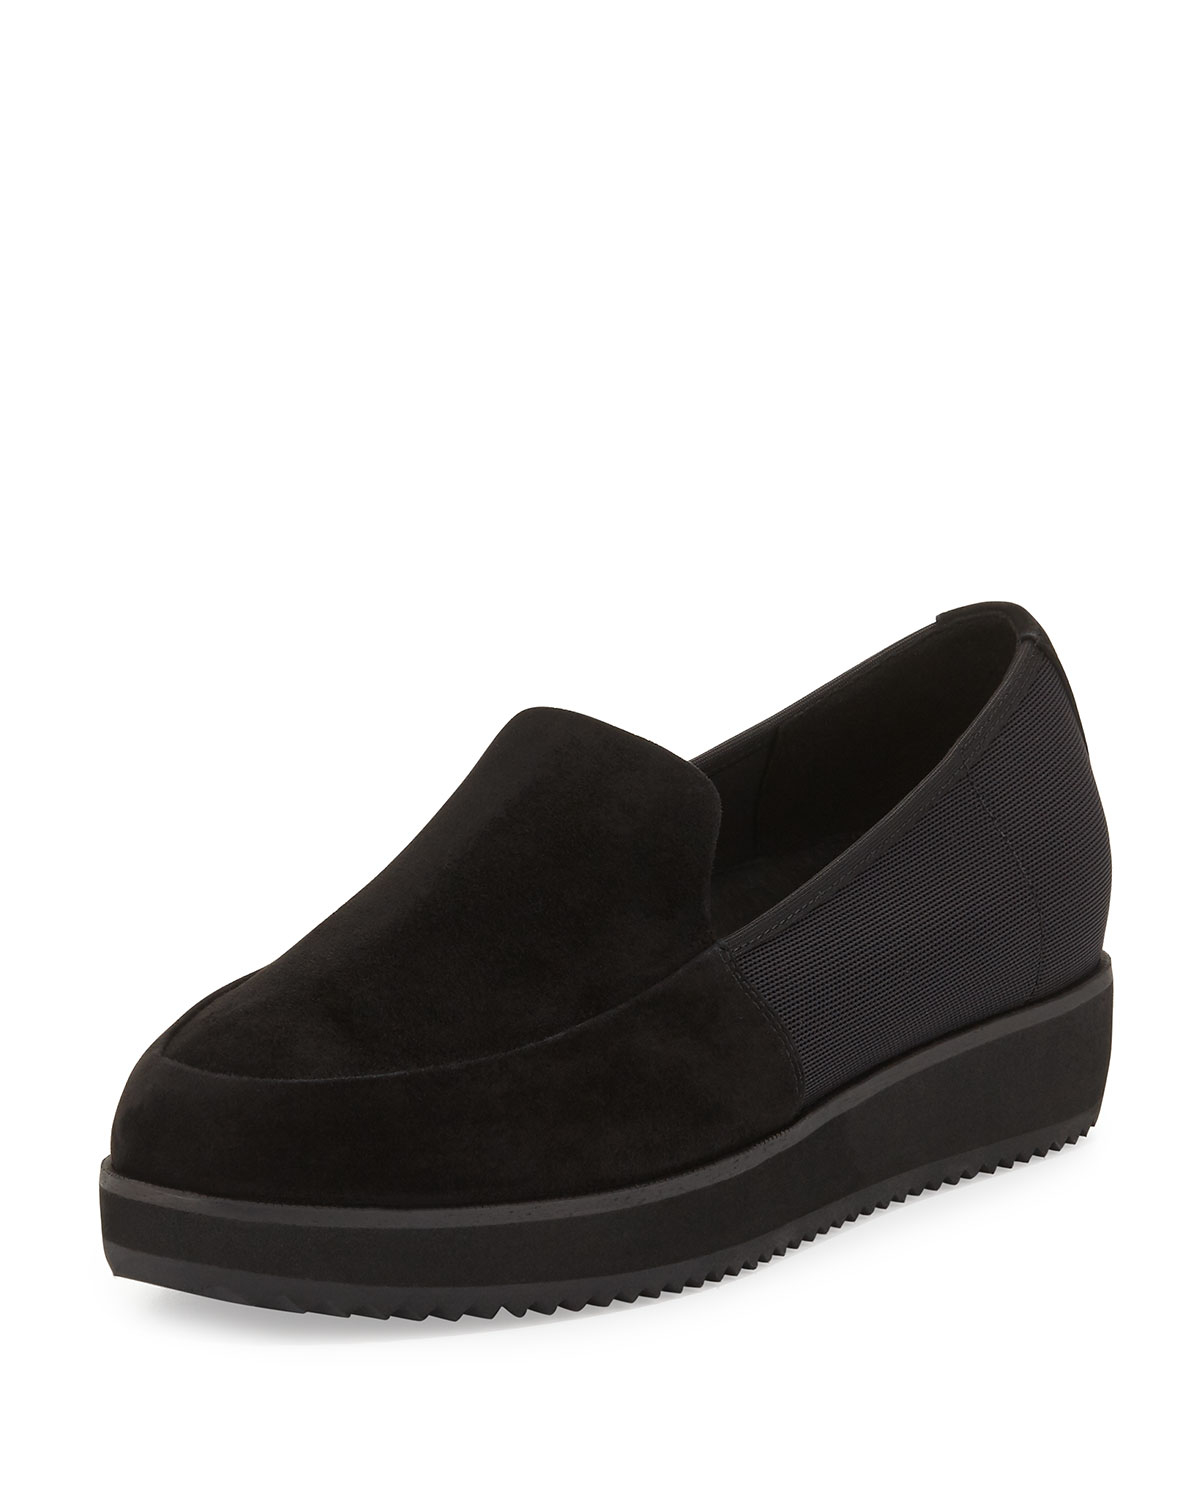 11d7ad9be5d Lyst - Eileen Fisher Dell Suede Slip-on Loafer